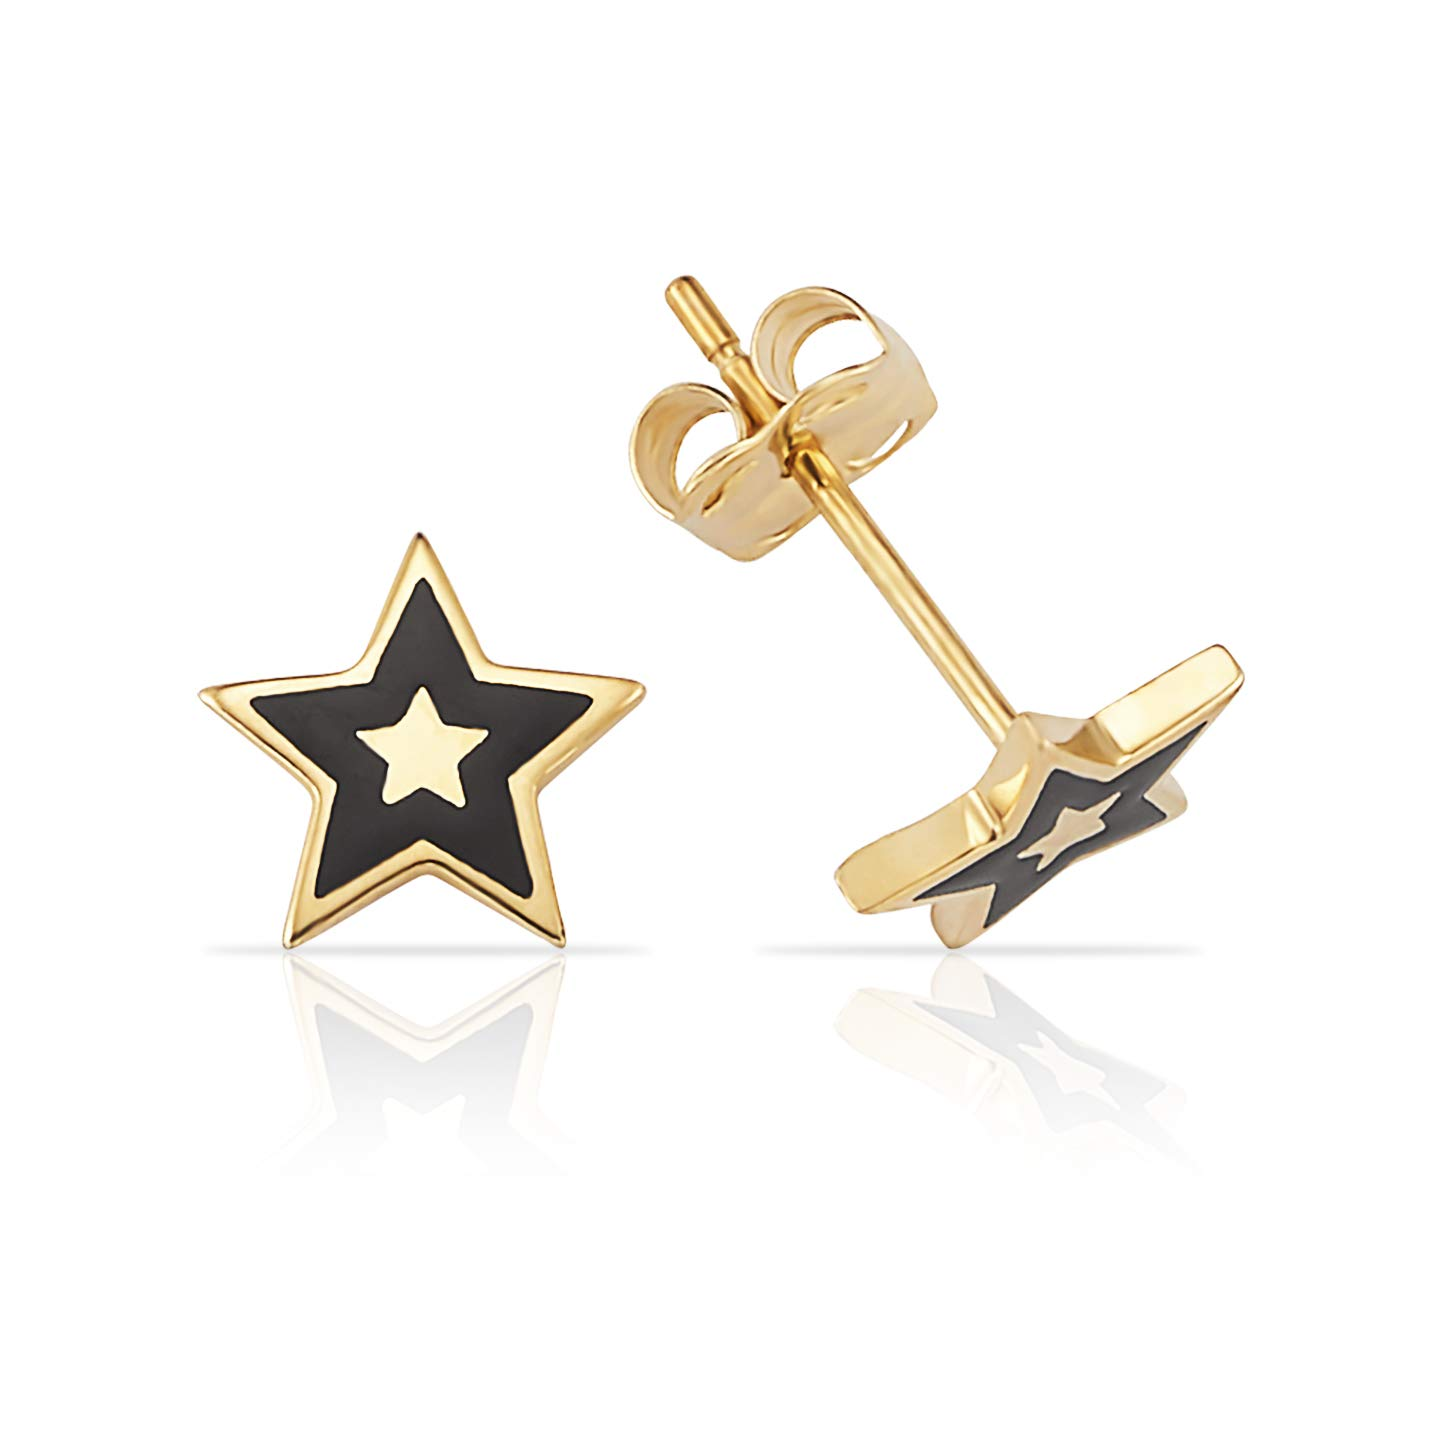 Solid Star Black Epoxy Stud Earrings in 14K Yellow Gold Jewel Connection OC202529